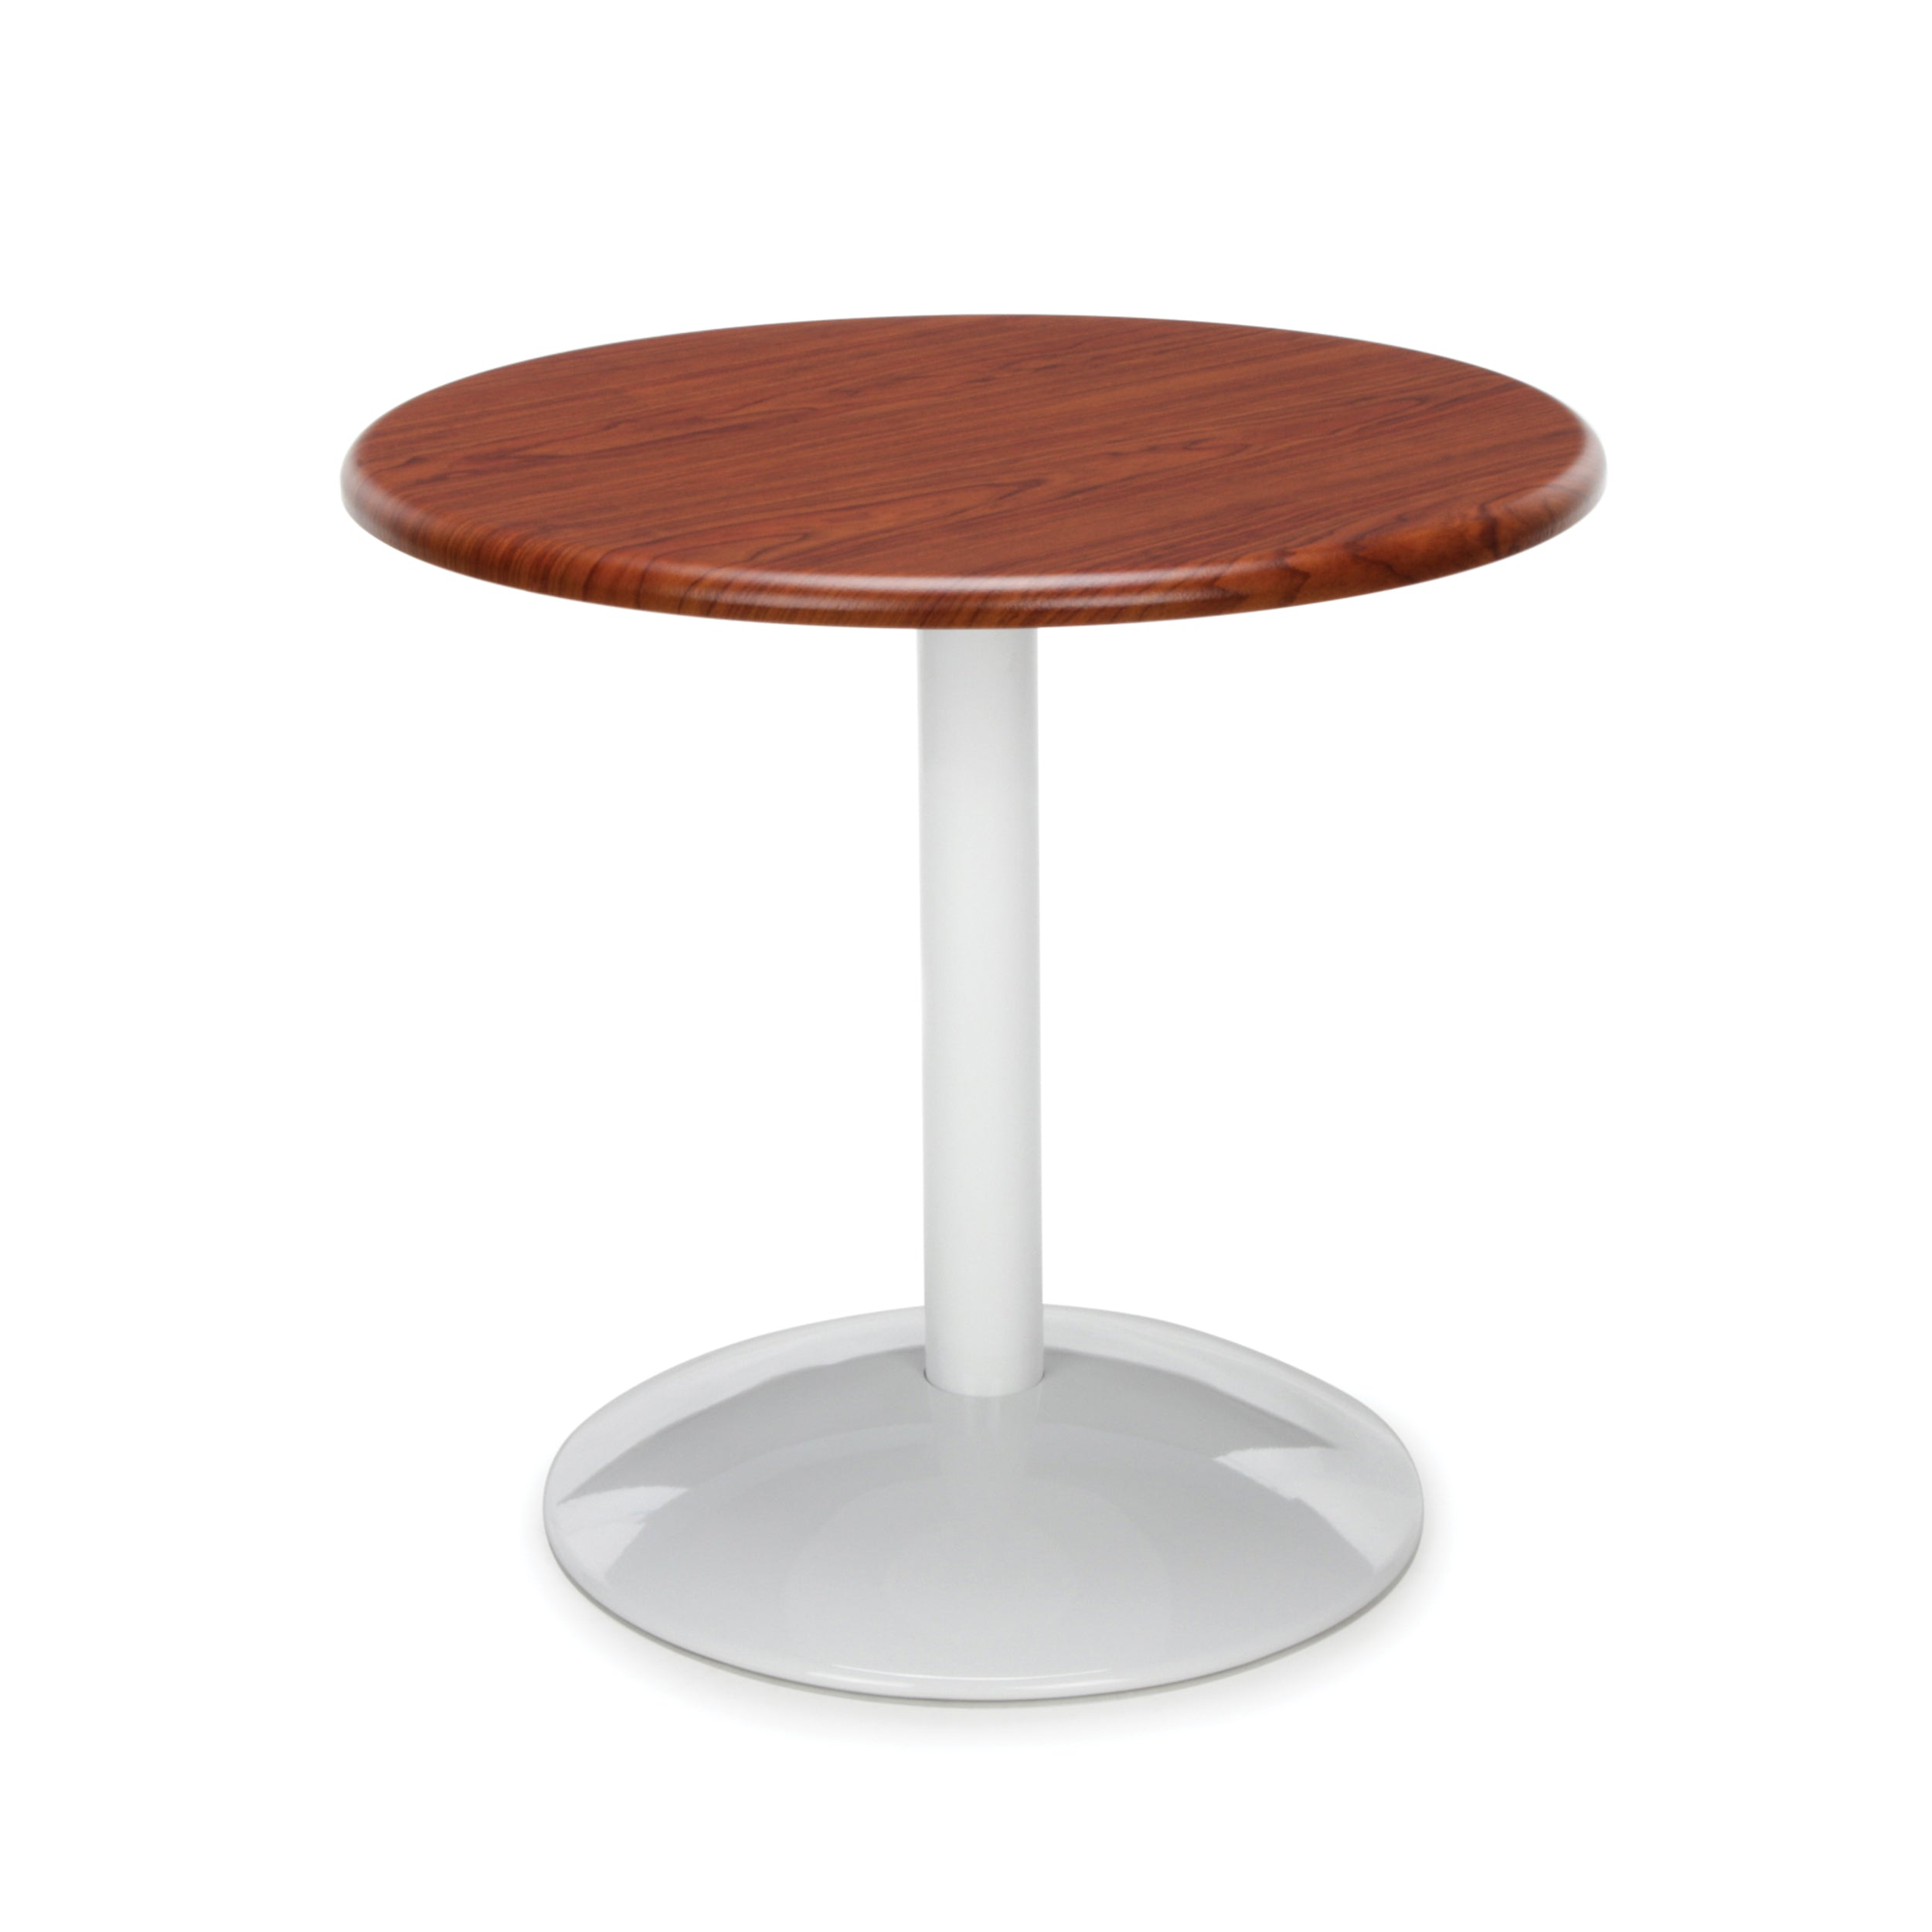 Ofminc Model OT24RD Orbit Series 24 Inch Round Table